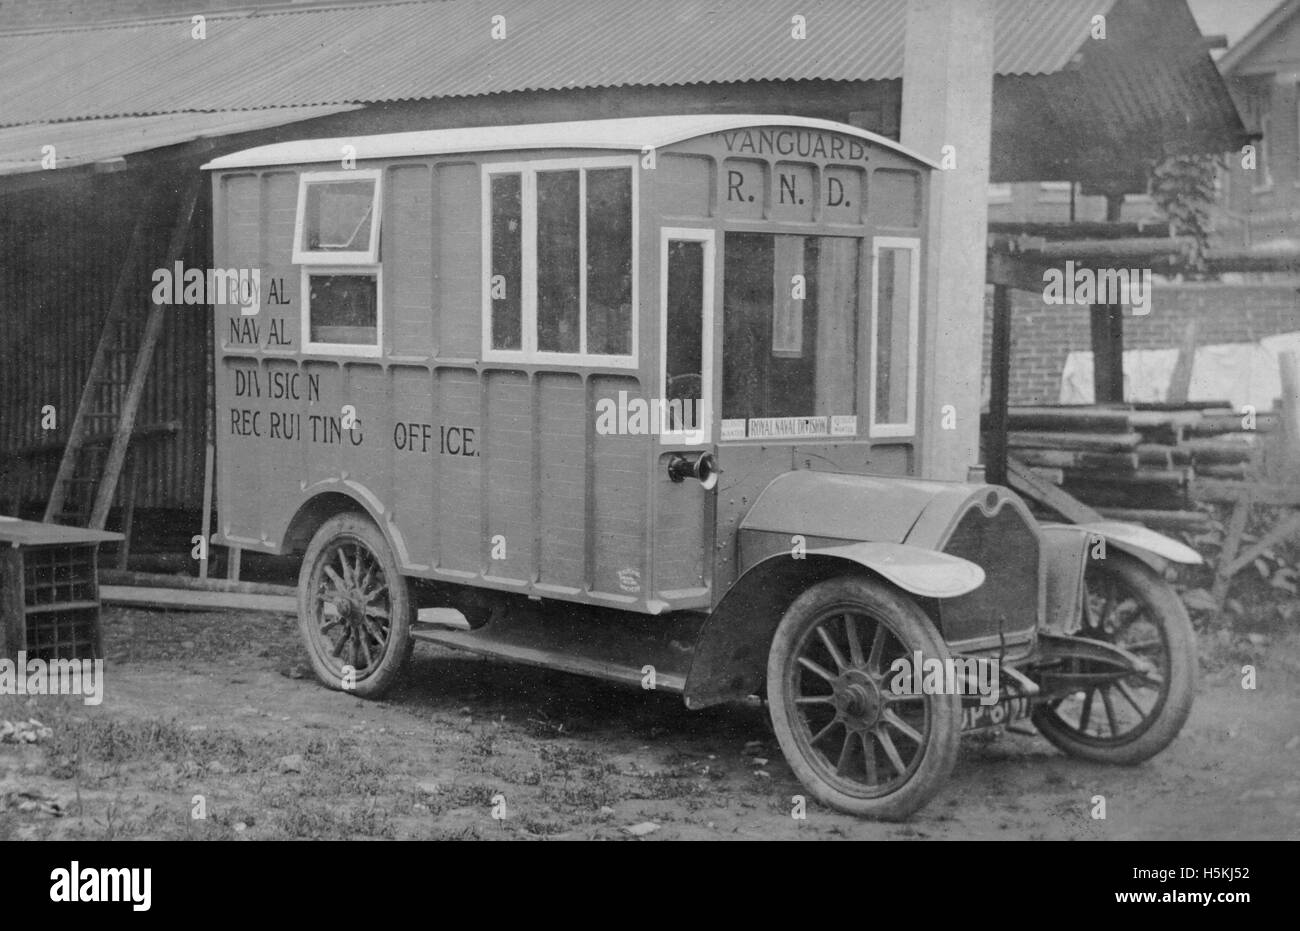 Crossley 1915  mobile Royal Naval Division Recruiting Office. Conversion by Hutchings - Stock Image